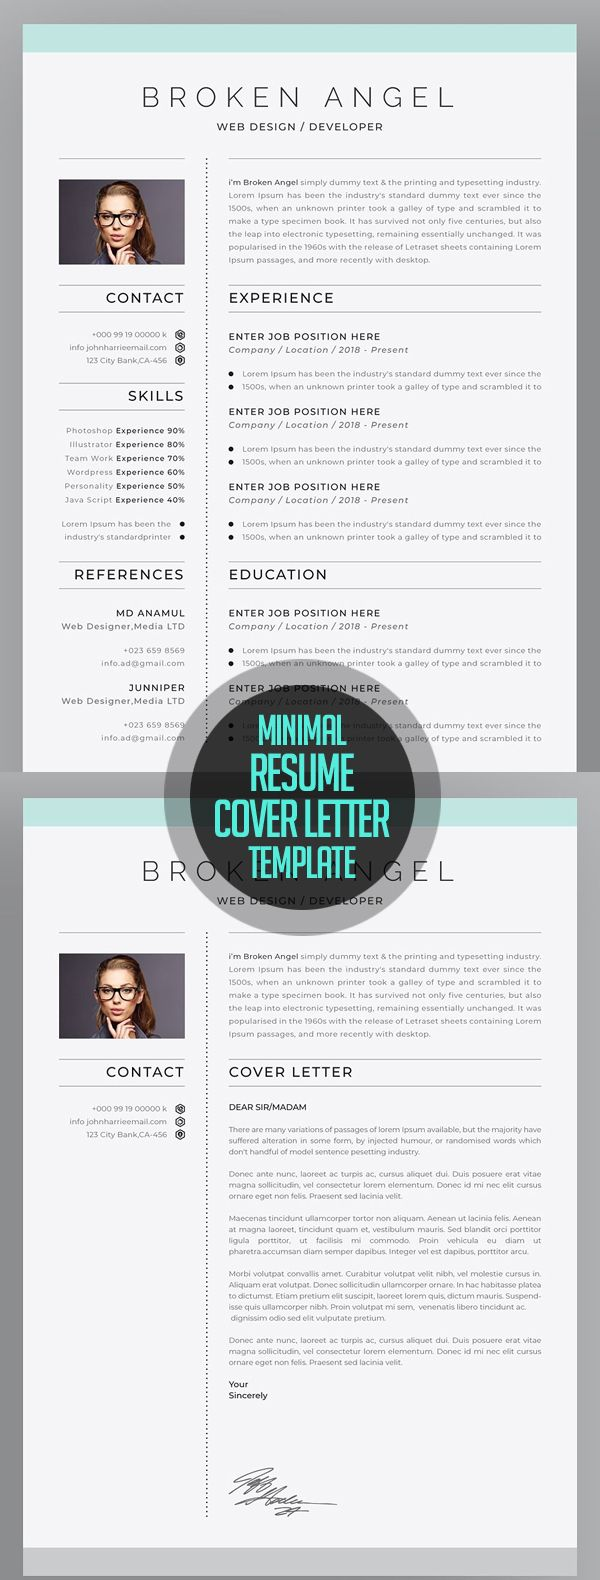 Resume Cover Letters Delectable Minimal Resume  Cover Letter  Pinterest  Resume Cover Letters .